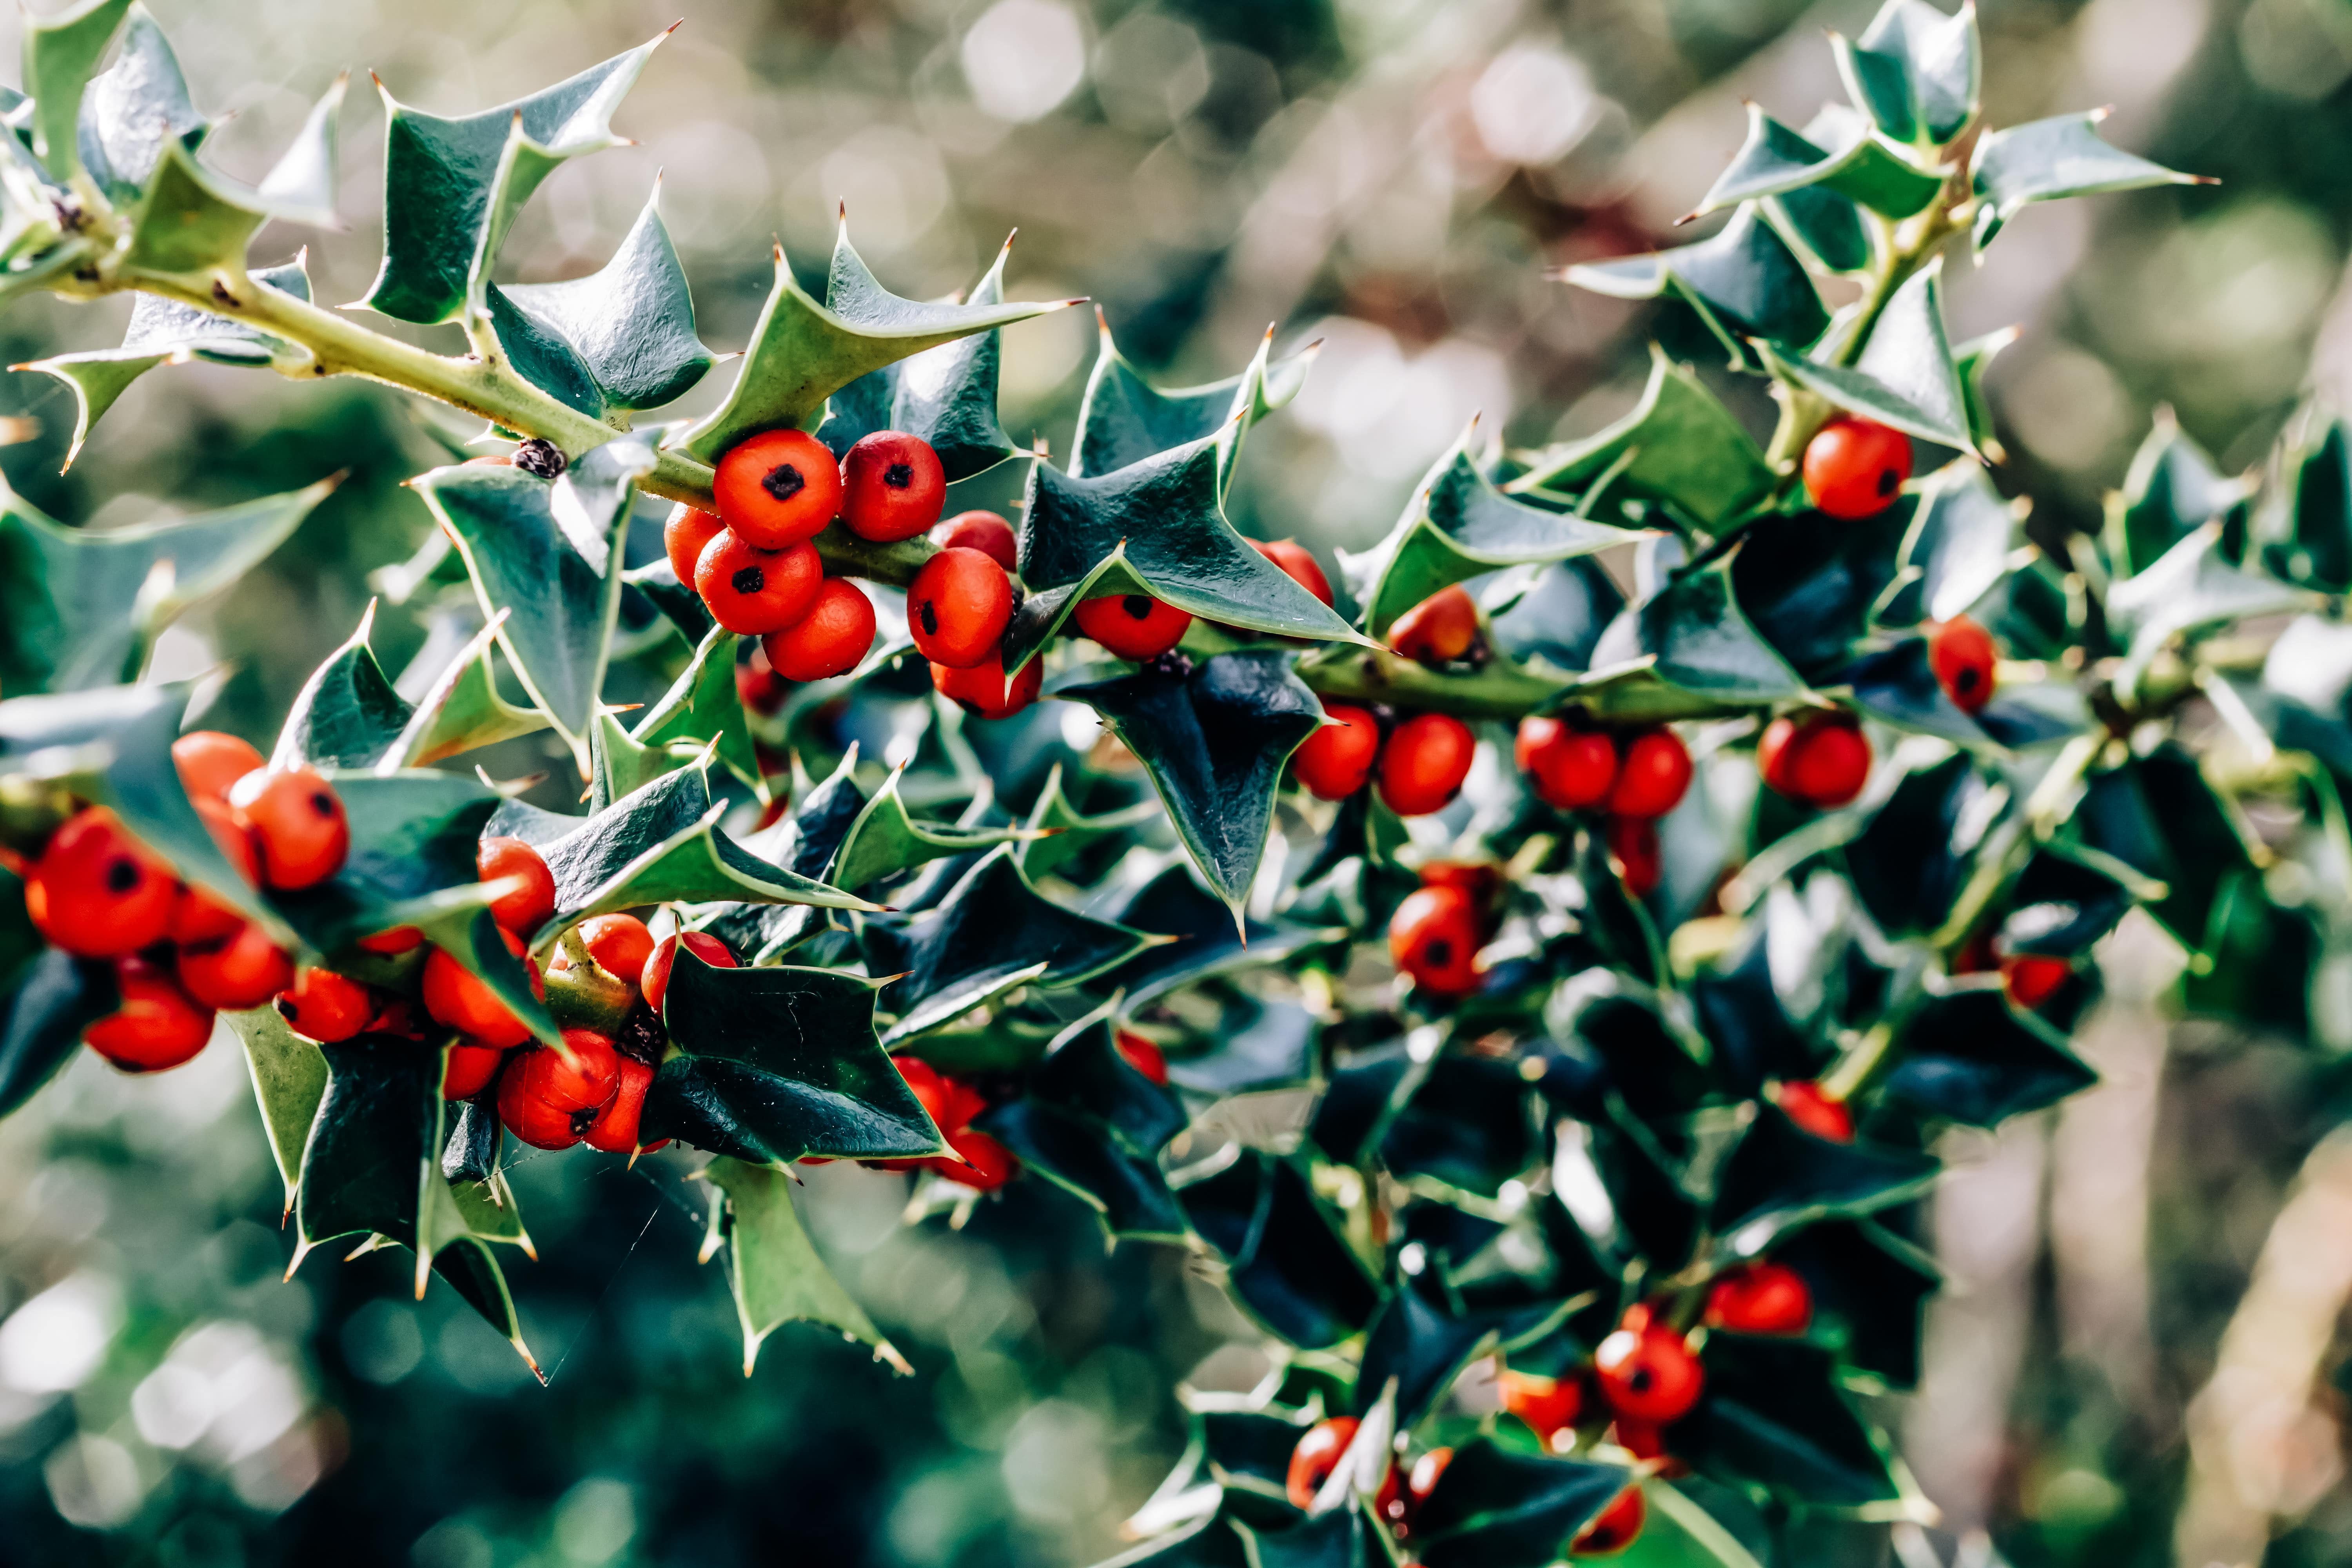 Beautifully lit branches of holly with red berries